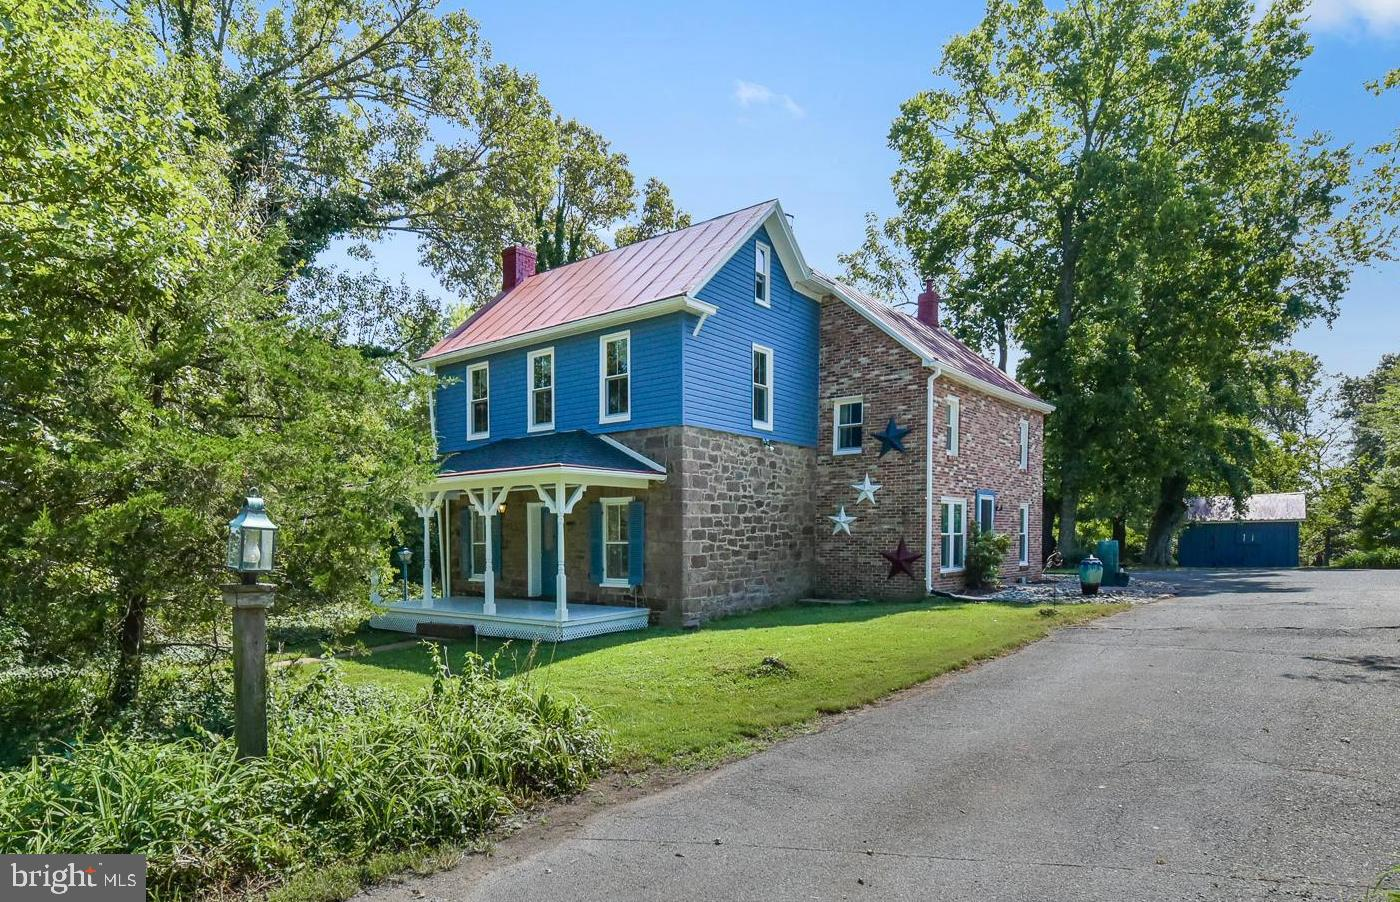 16600 WHITES FERRY ROAD, BOYDS, MD 20841